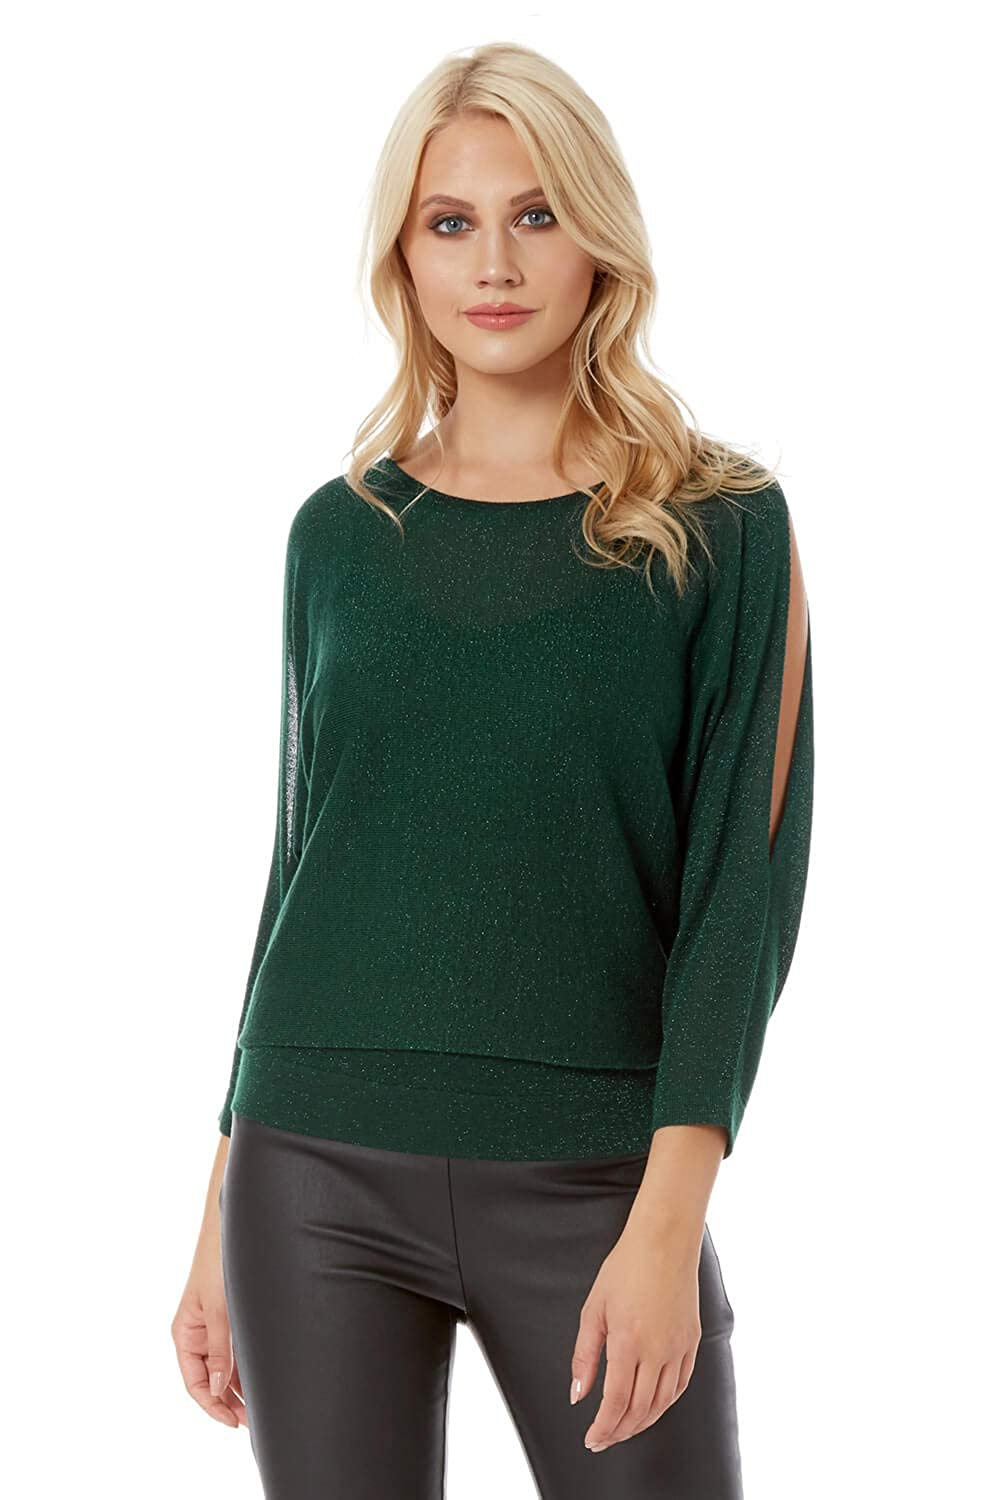 Roman Originals Womens Lurex Split Sleeve Top Round Neck Long Sleeve Top - Ladies Christmas Comfy Knitwear for Everyday Daytime Casual Work Wear Party Knitted Tops